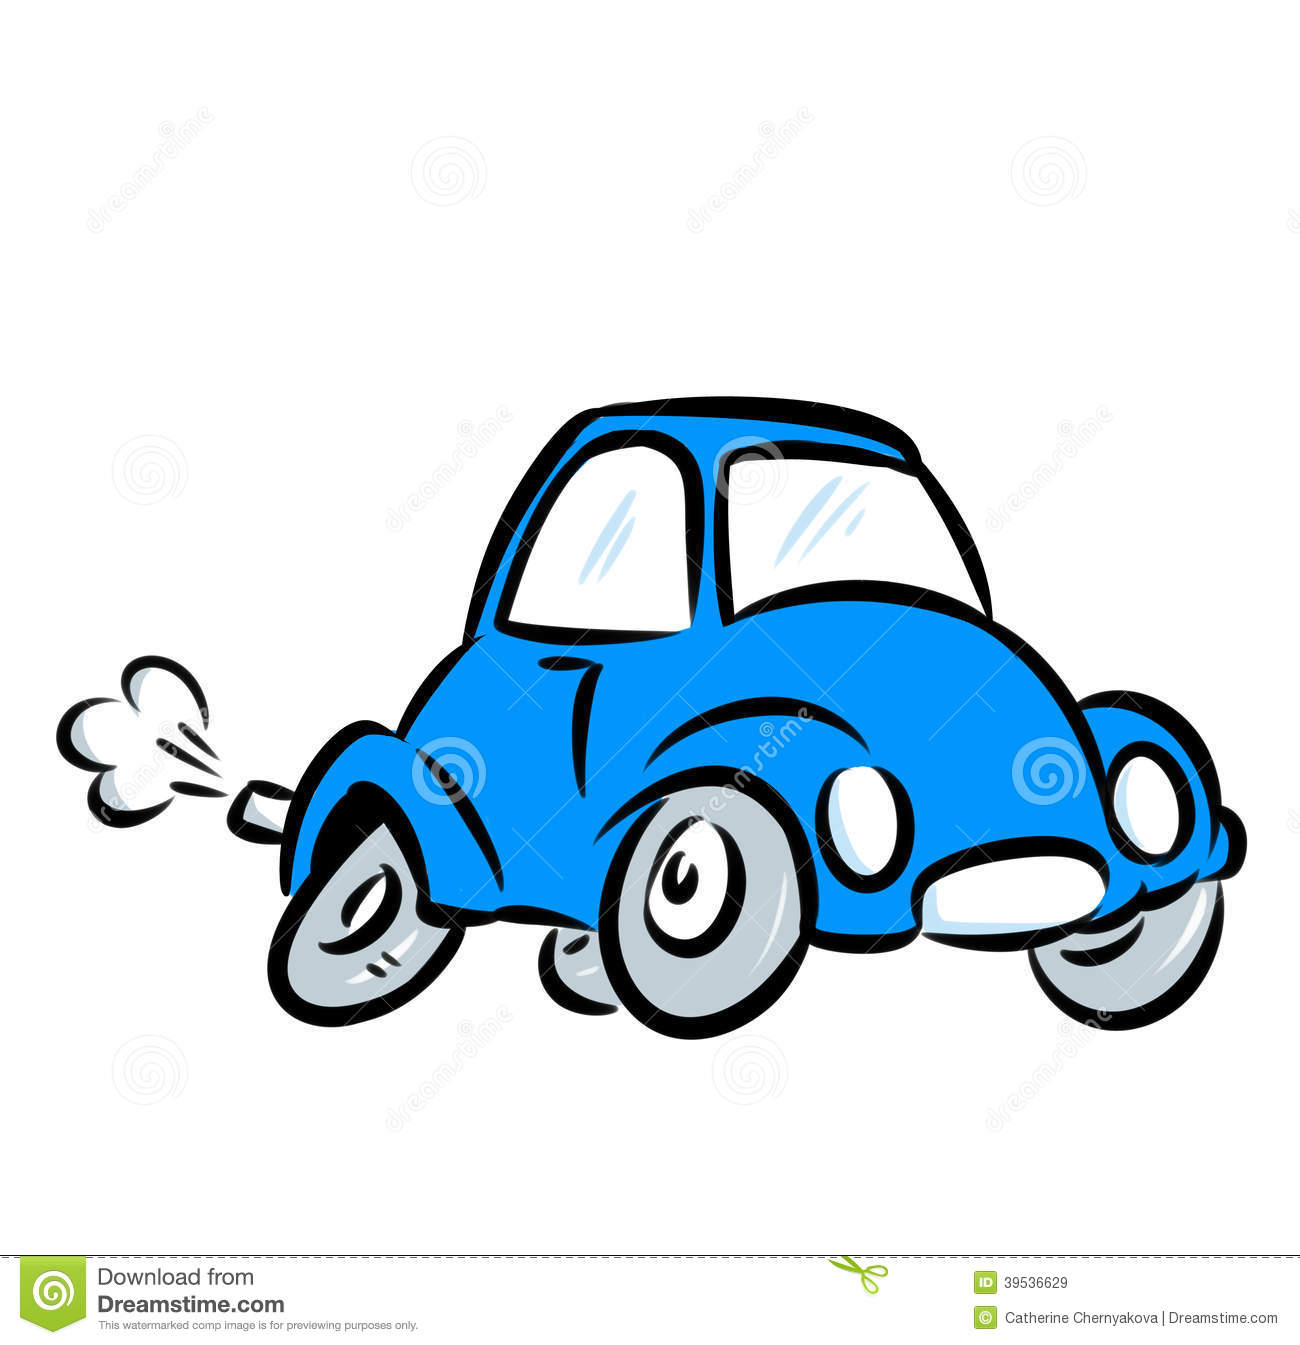 Blue Car Illustration Stock Illustration - Image: 39536629